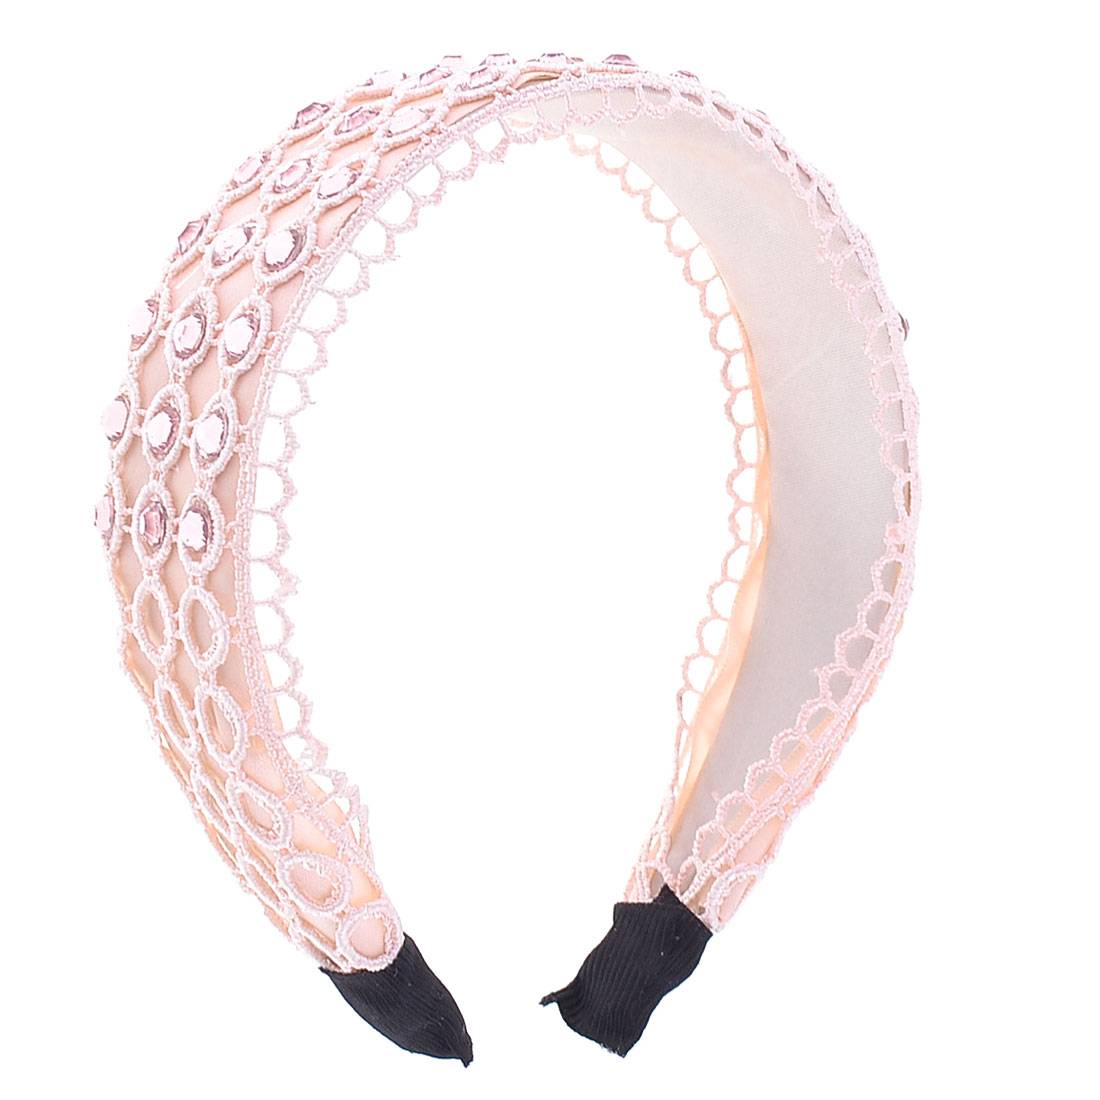 Women light Pink Rhinestones Inlaid Glittery Hair Hoop Hairband